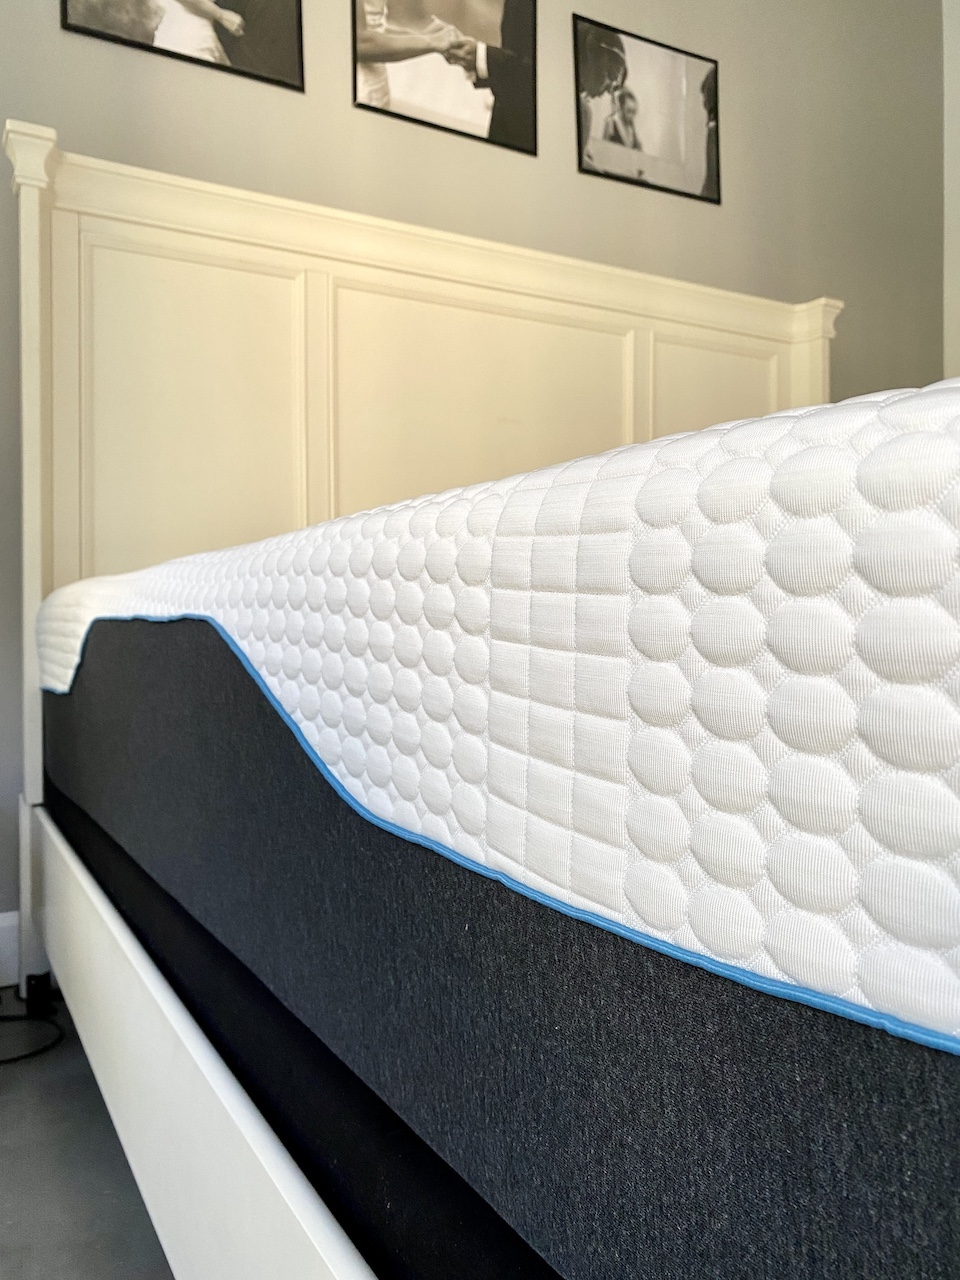 Review of Hybrid mattress for hot sleepers